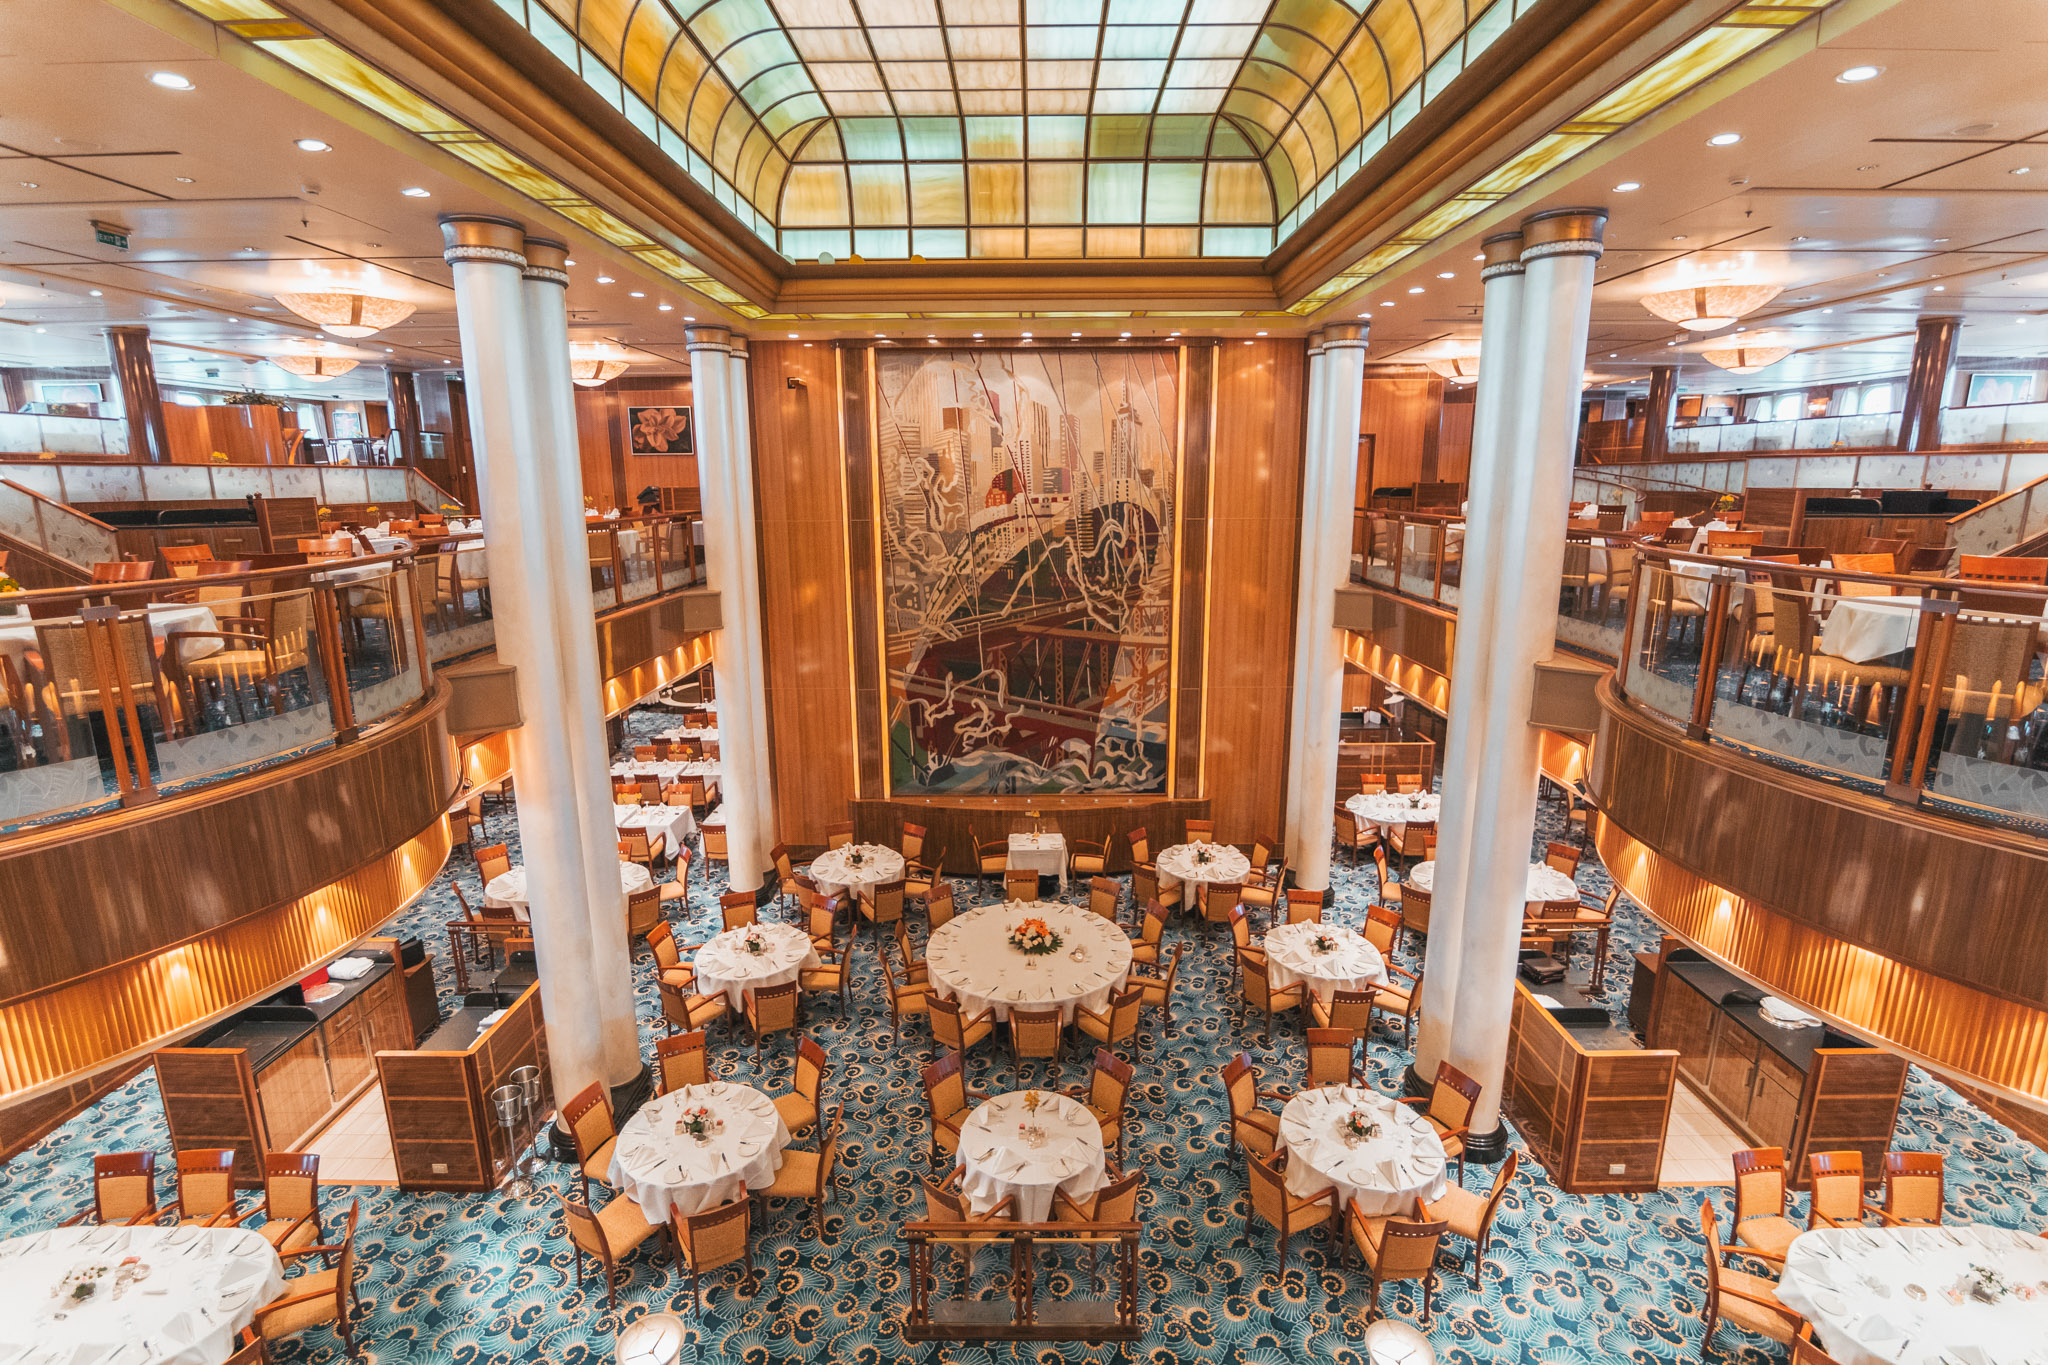 Cunard Queen Mary 2, Queen Mary 2 Main Dining Room